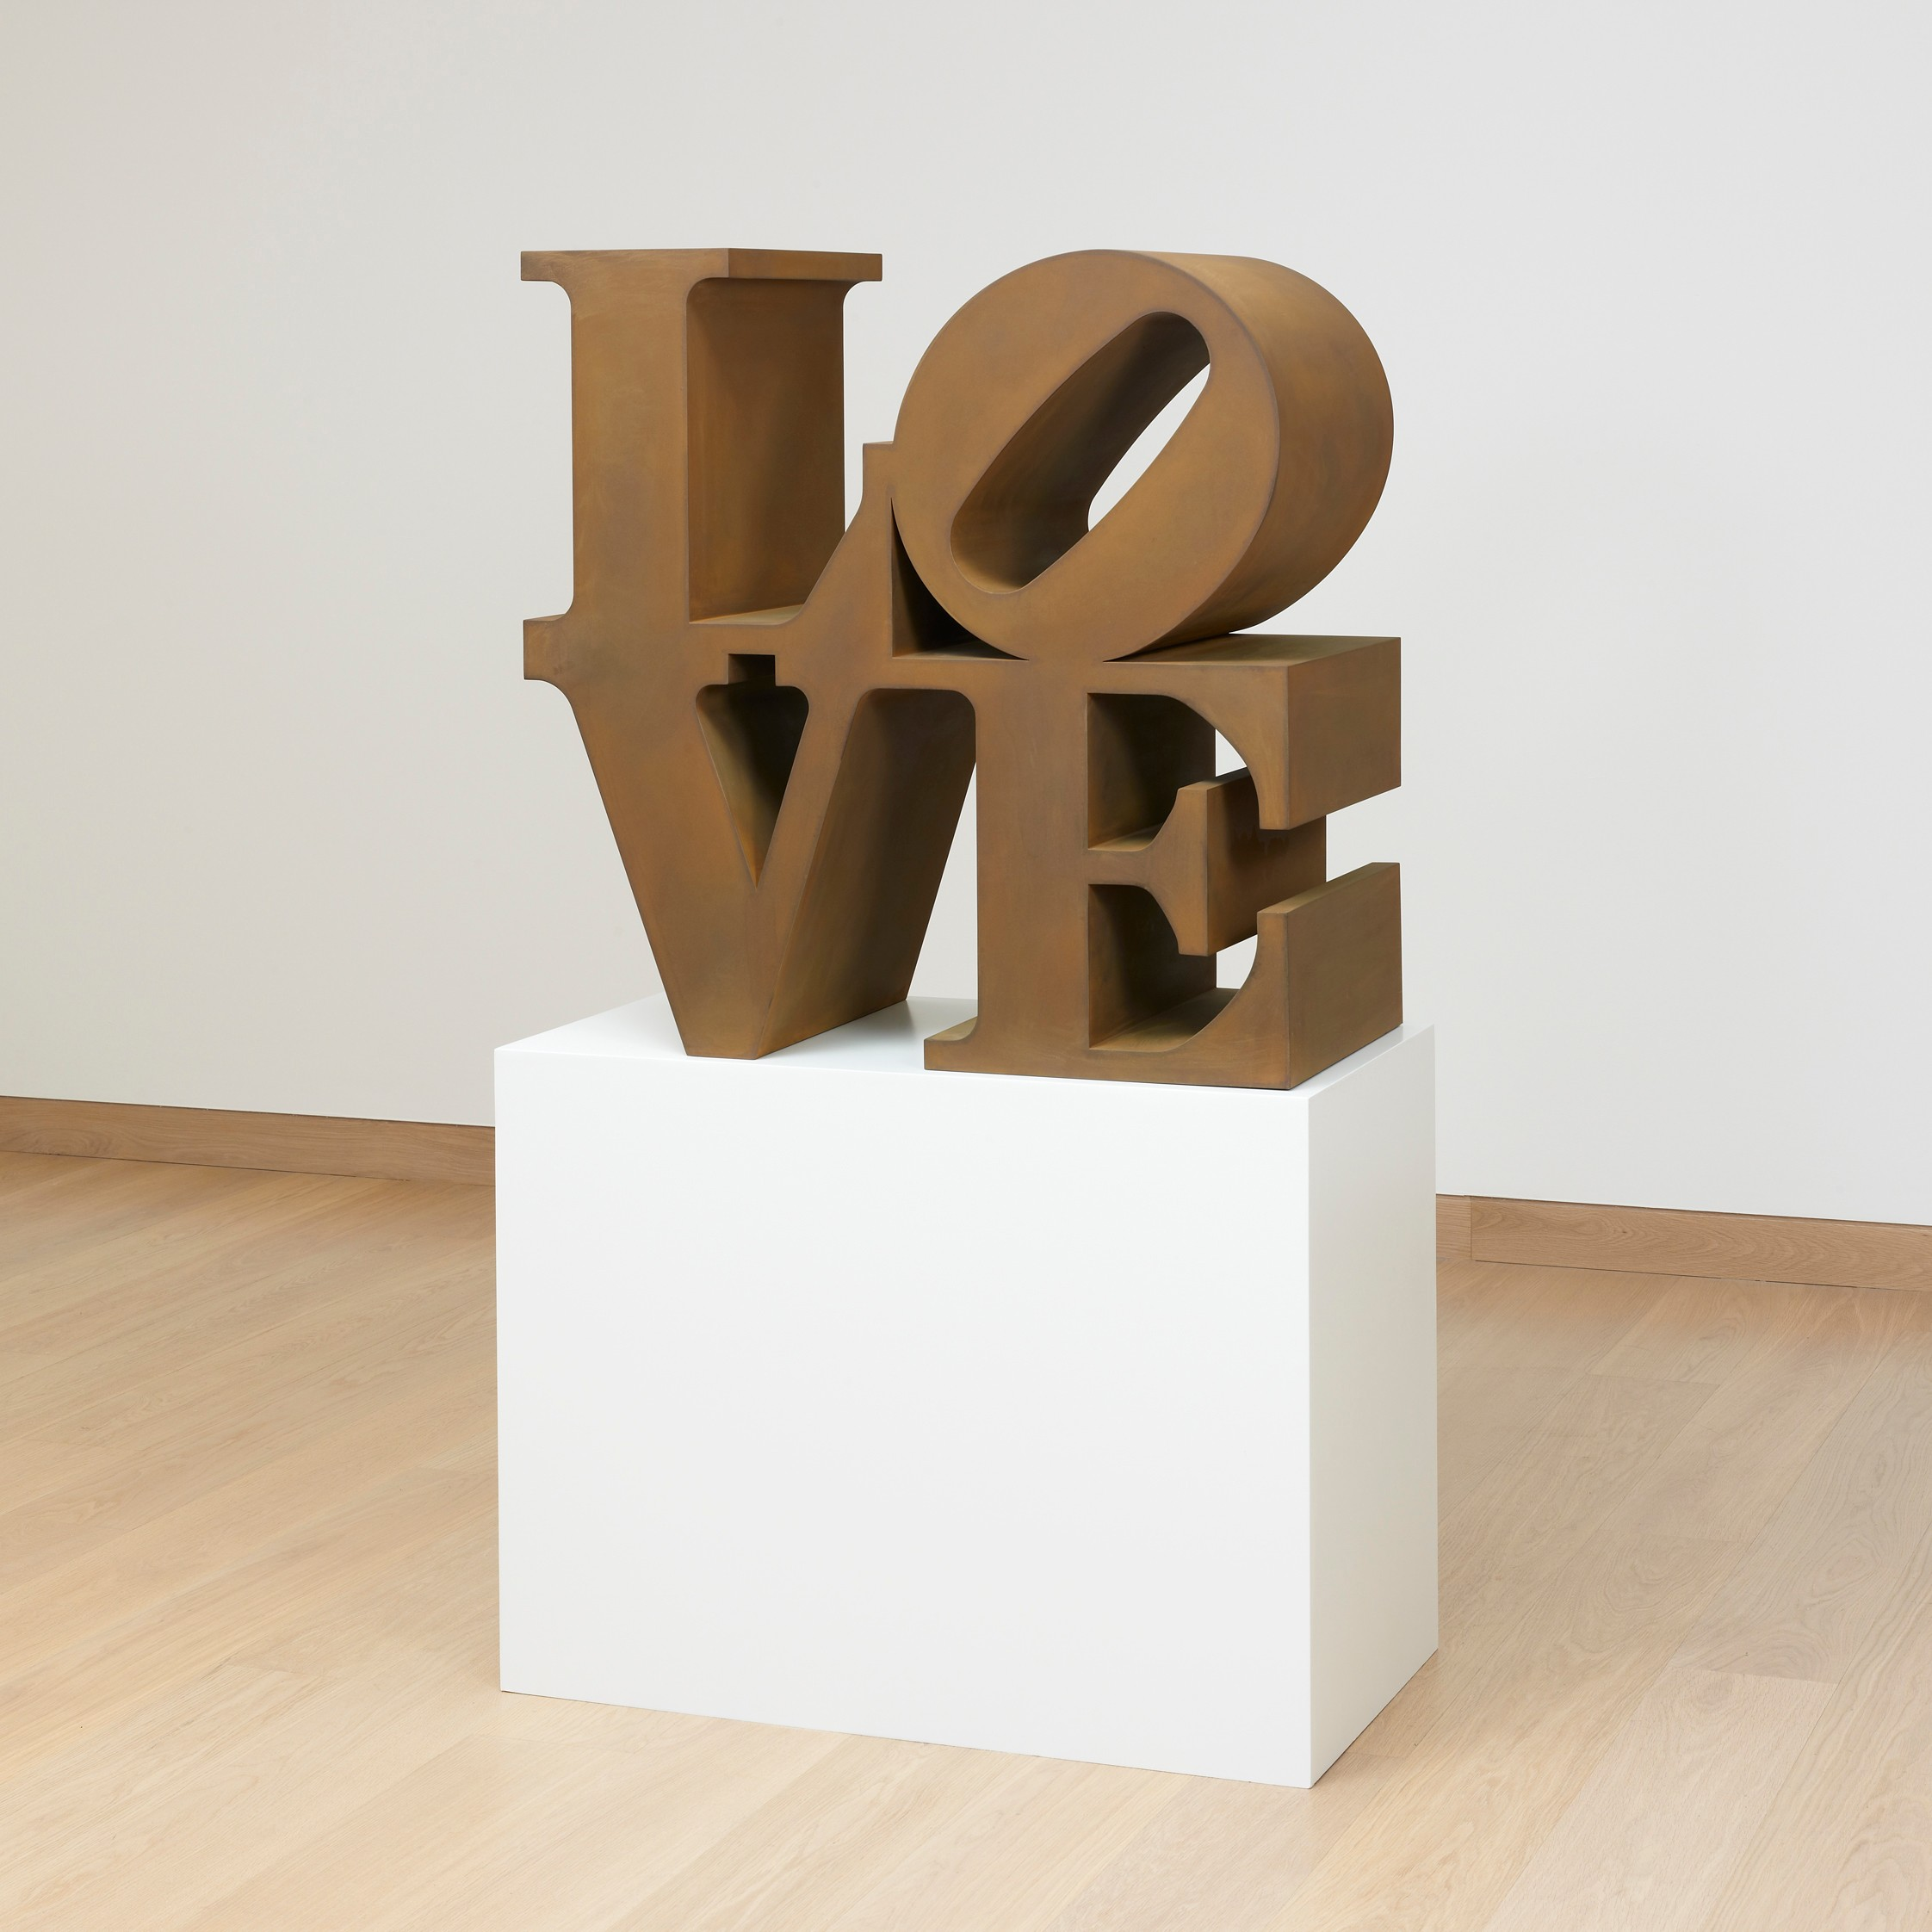 Best Galleries to Explore at Art Basel Miami 2018 - Robert Indiana kasmin Best Galleries to Explore at Art Basel Miami 2018: Kasmin Best Galleries to Explore at Art Basel Miami 2018 Robert Indiana